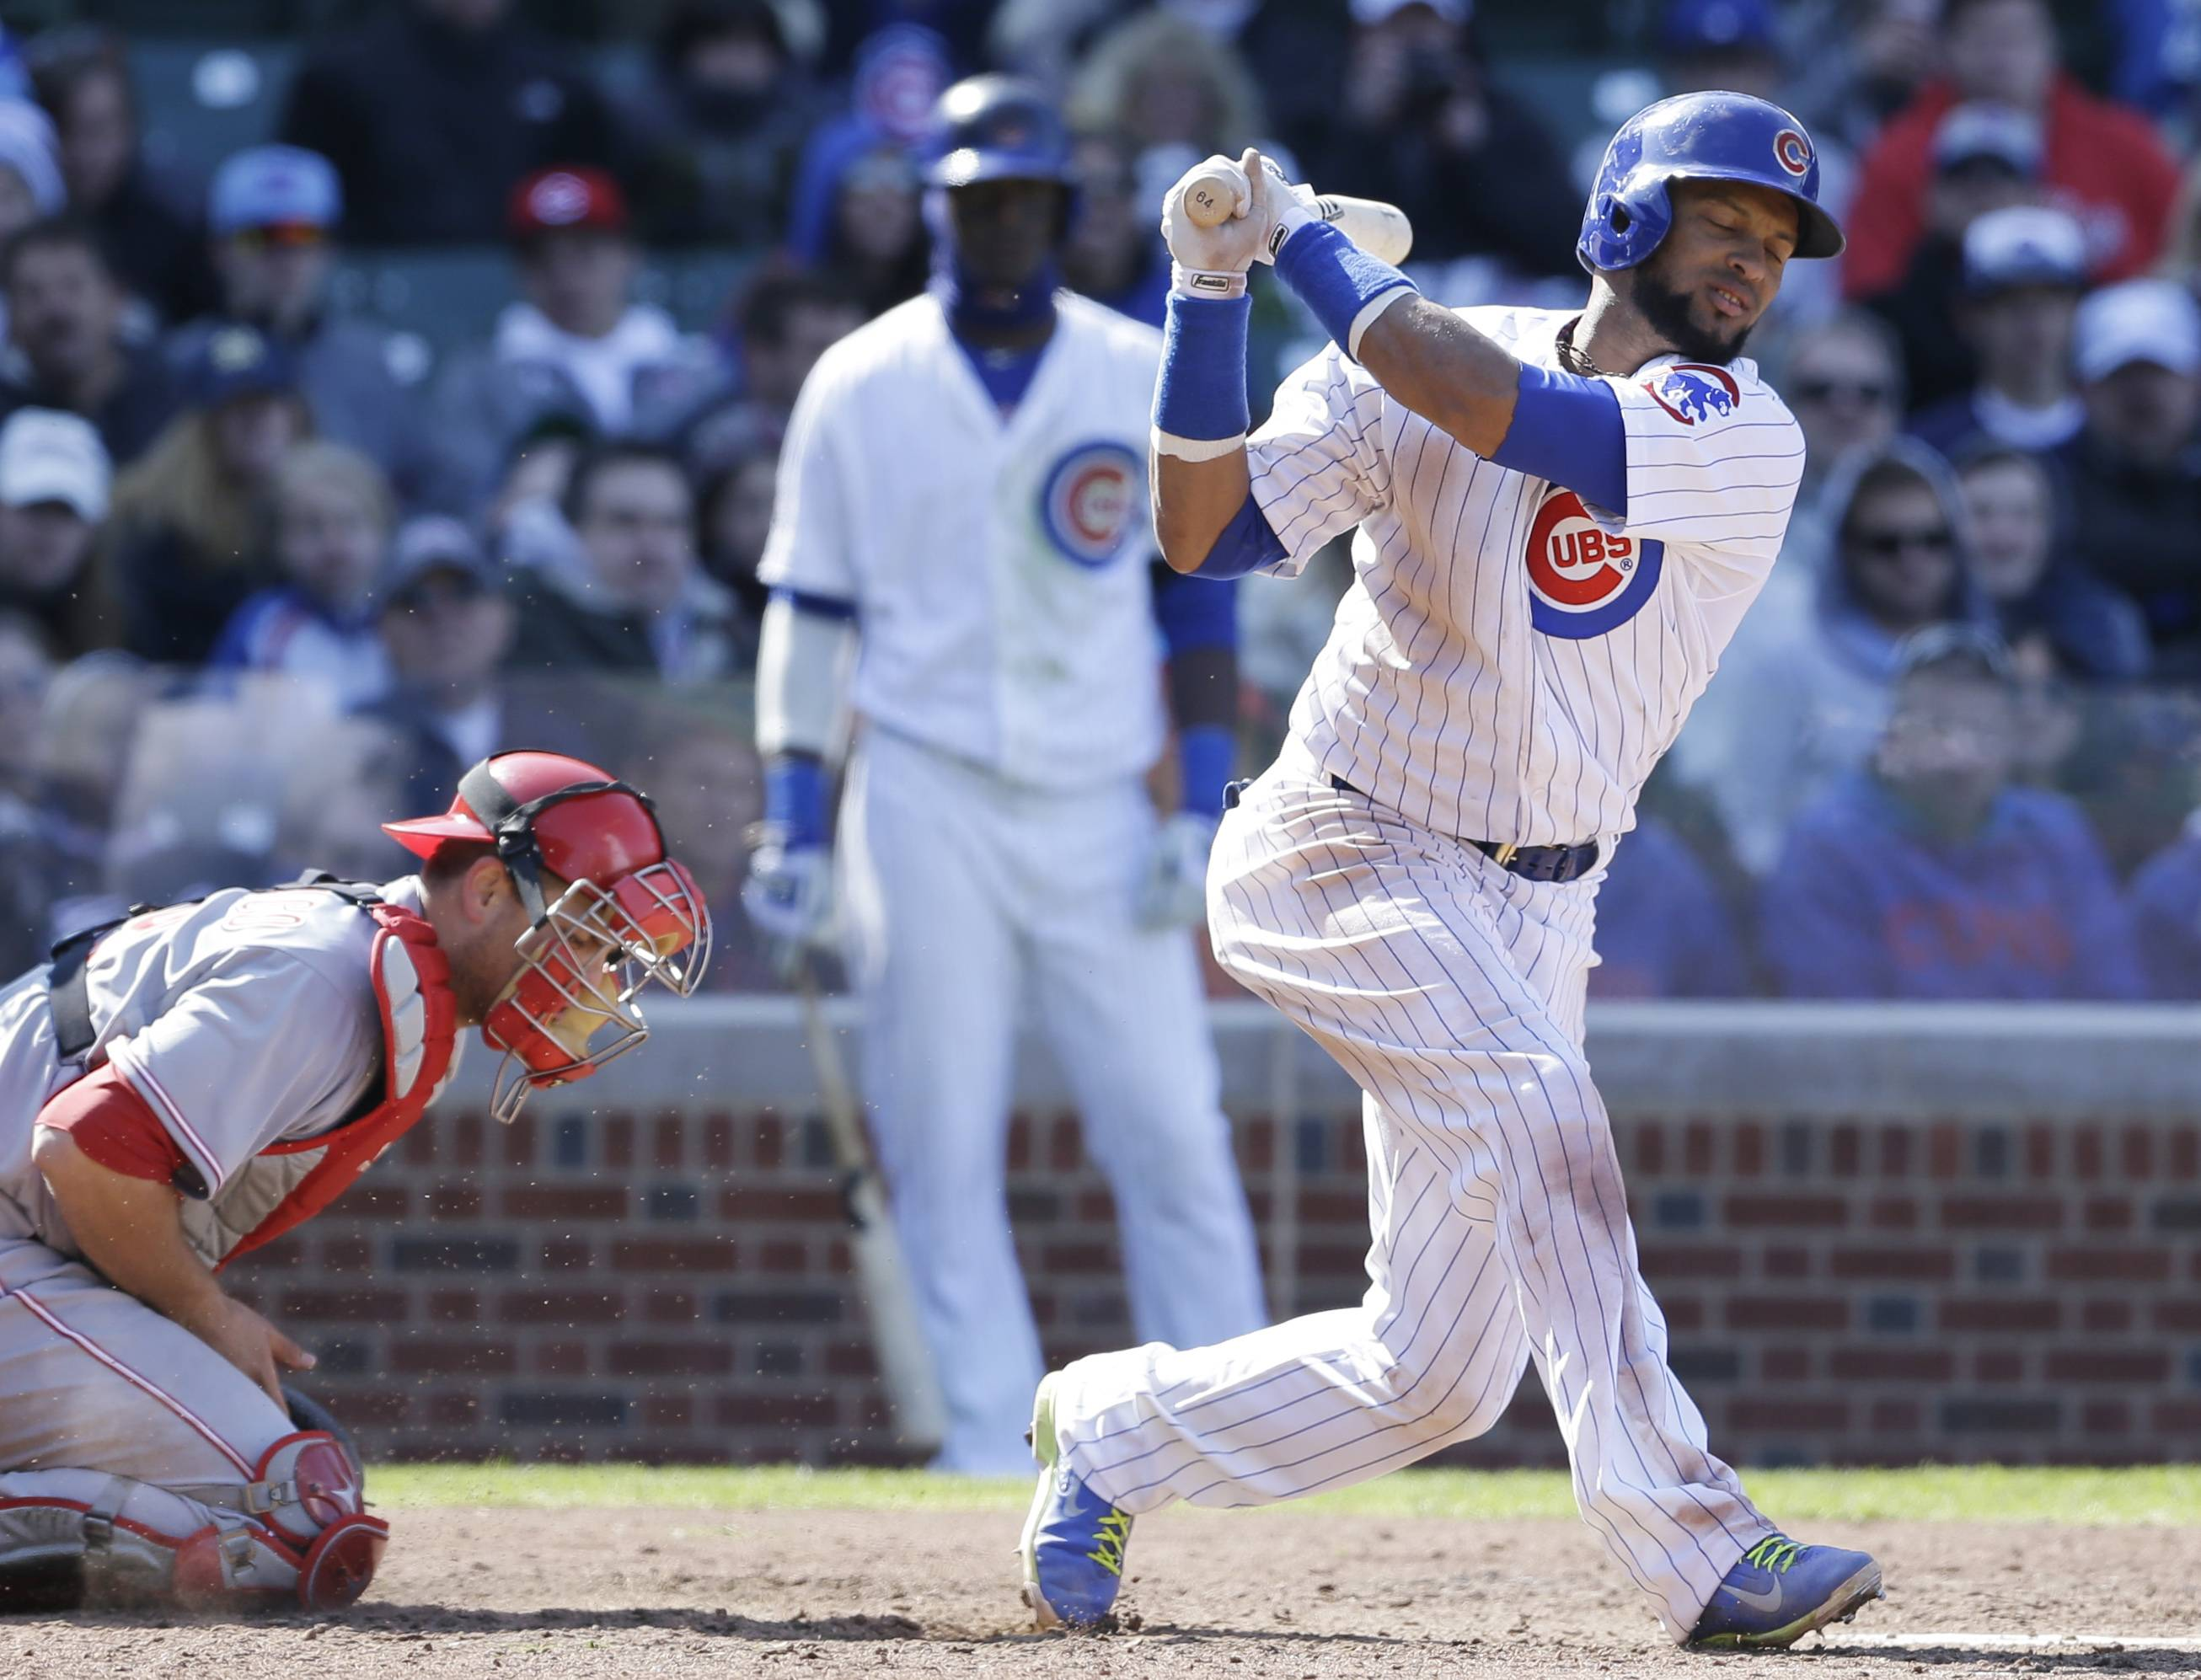 Chicago Cubs' Emilio Bonifacio, right, strikes out swinging during the seventh inning of a baseball game against the Cincinnati Reds in Chicago, Friday, April 18, 2014. The Reds won 4-1. (AP Photo/Nam Y. Huh)